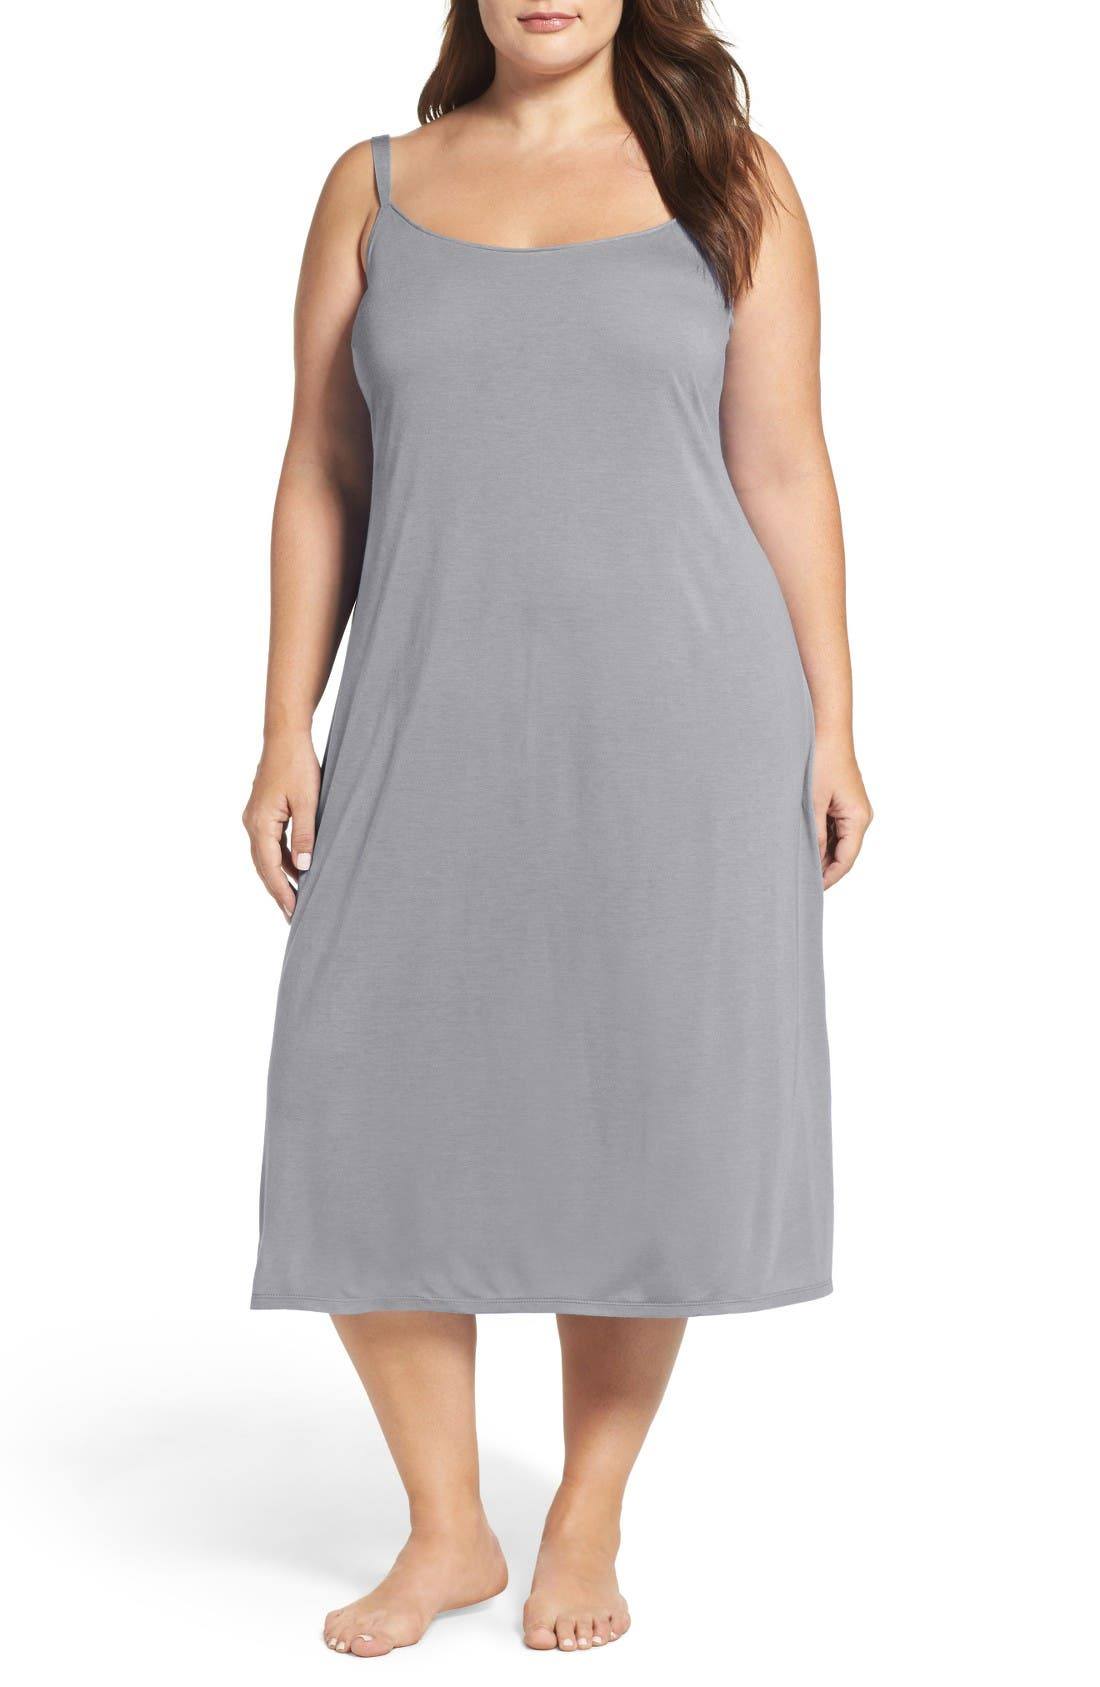 'Shangri La' Nightgown,                             Main thumbnail 1, color,                             HEATHER GREY